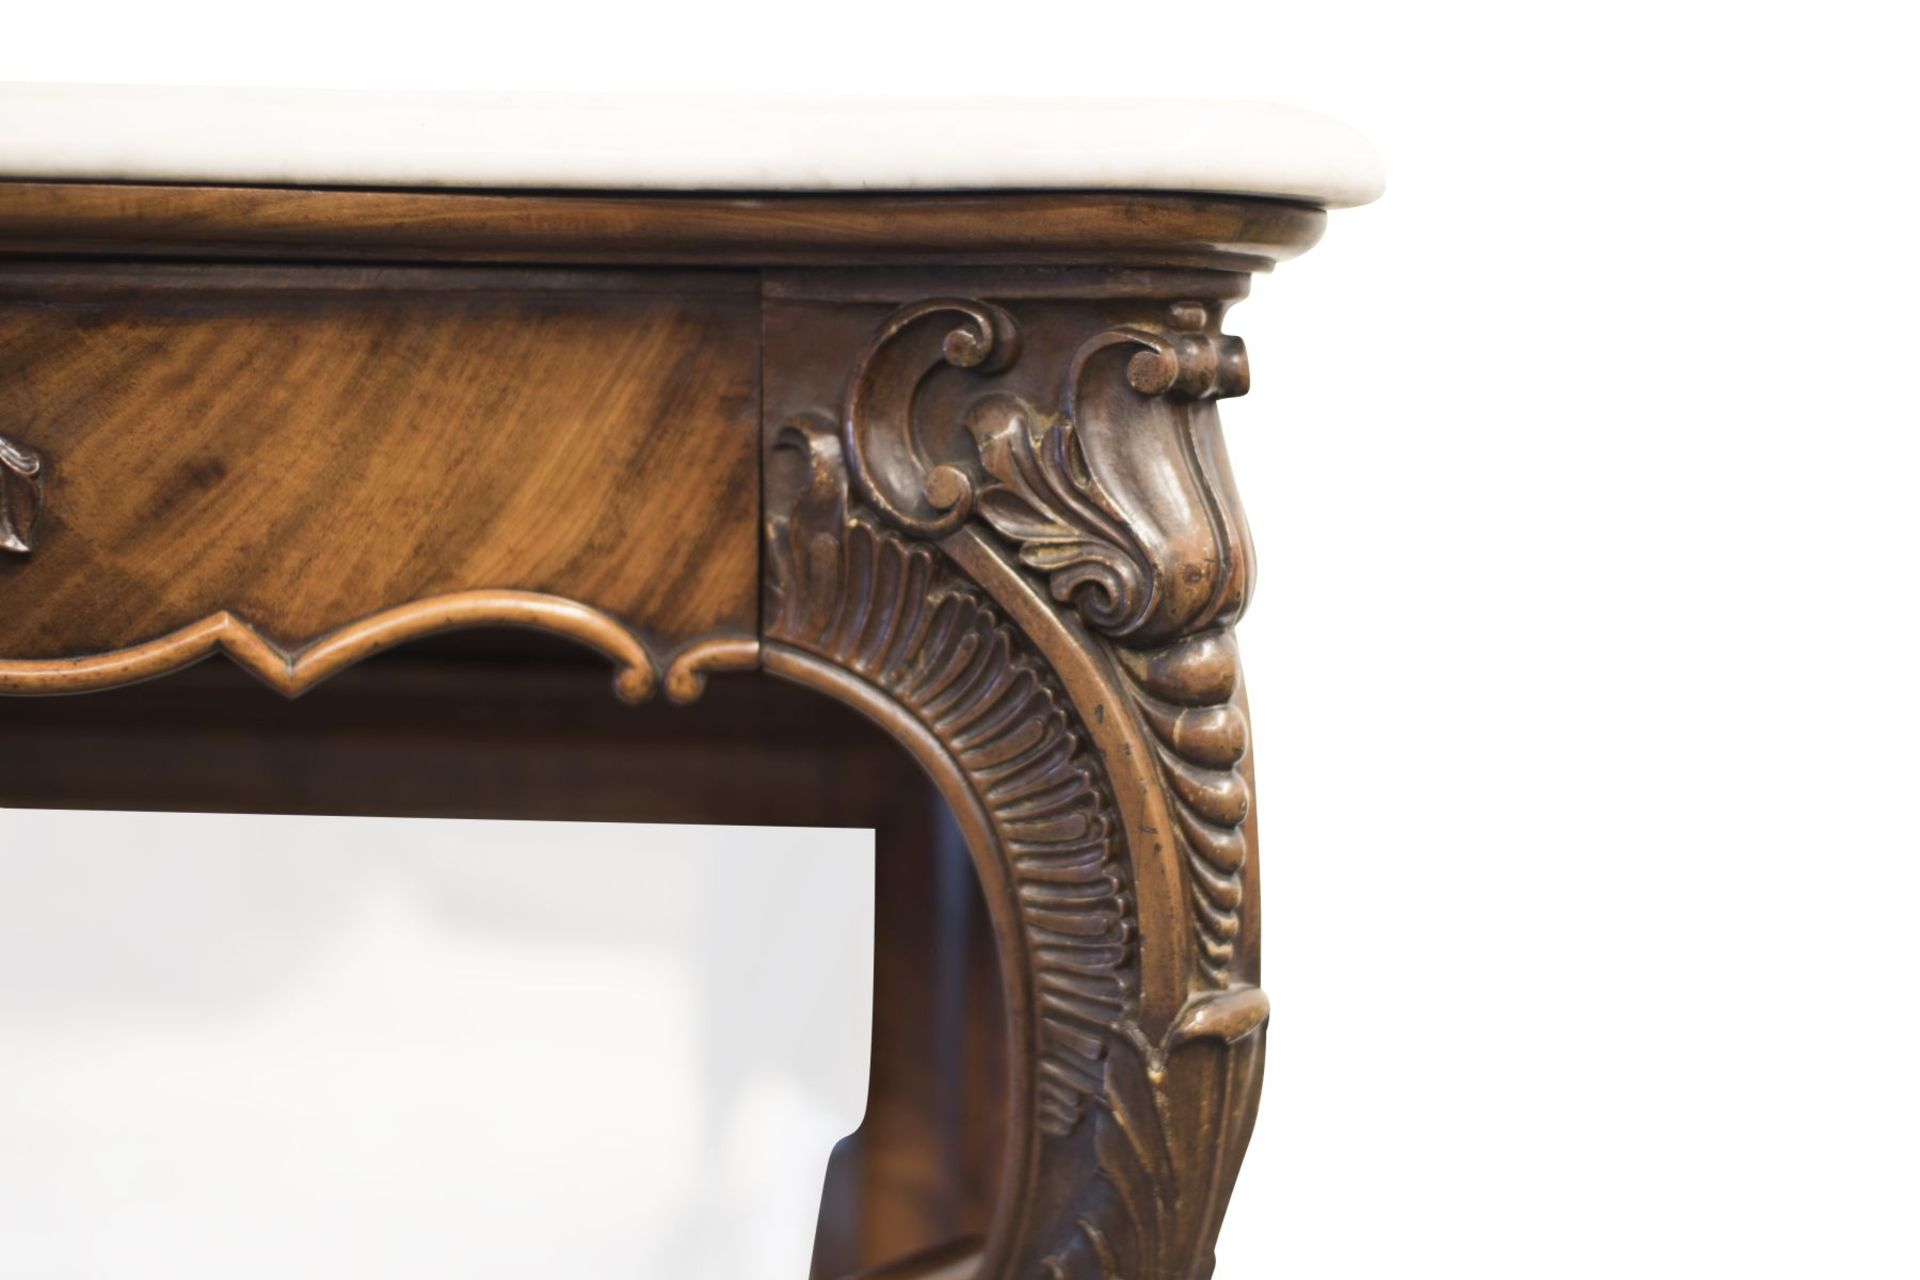 Baroque Buffet with Mirror and Marble Top - Bild 3 aus 6